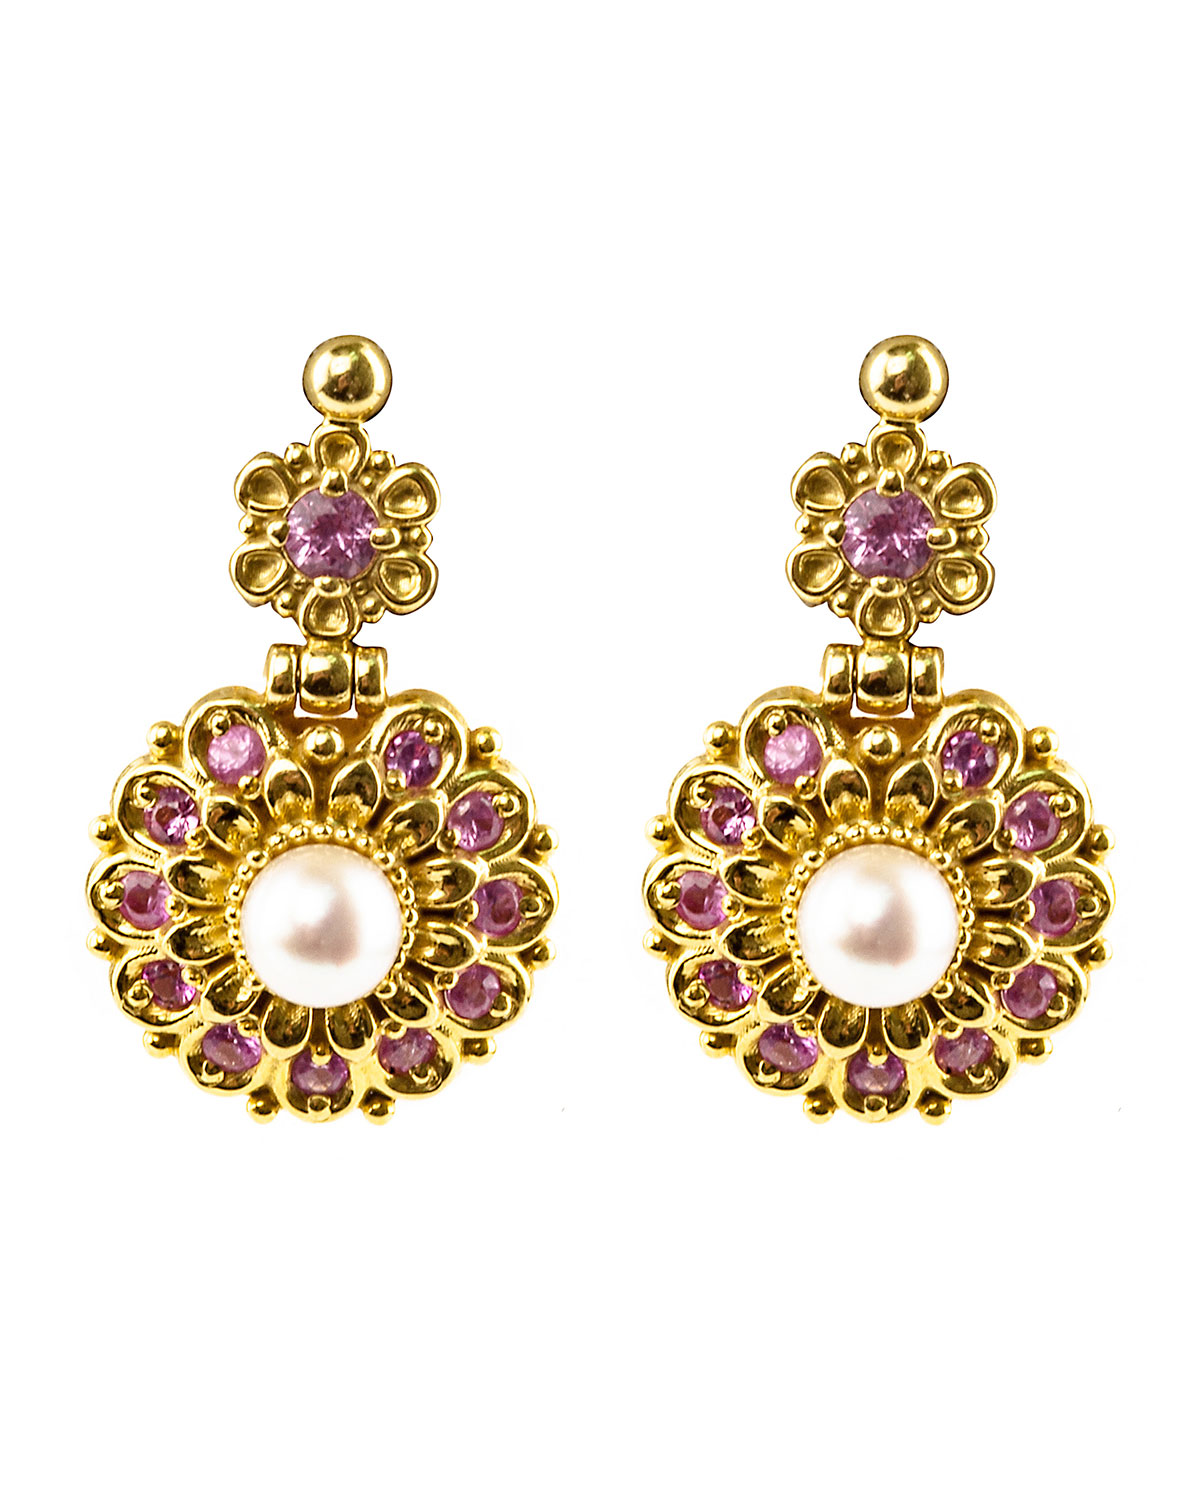 Konstantino 18k Yellow Gold Sapphire & Pearl Earrings 4a91dCkPXk